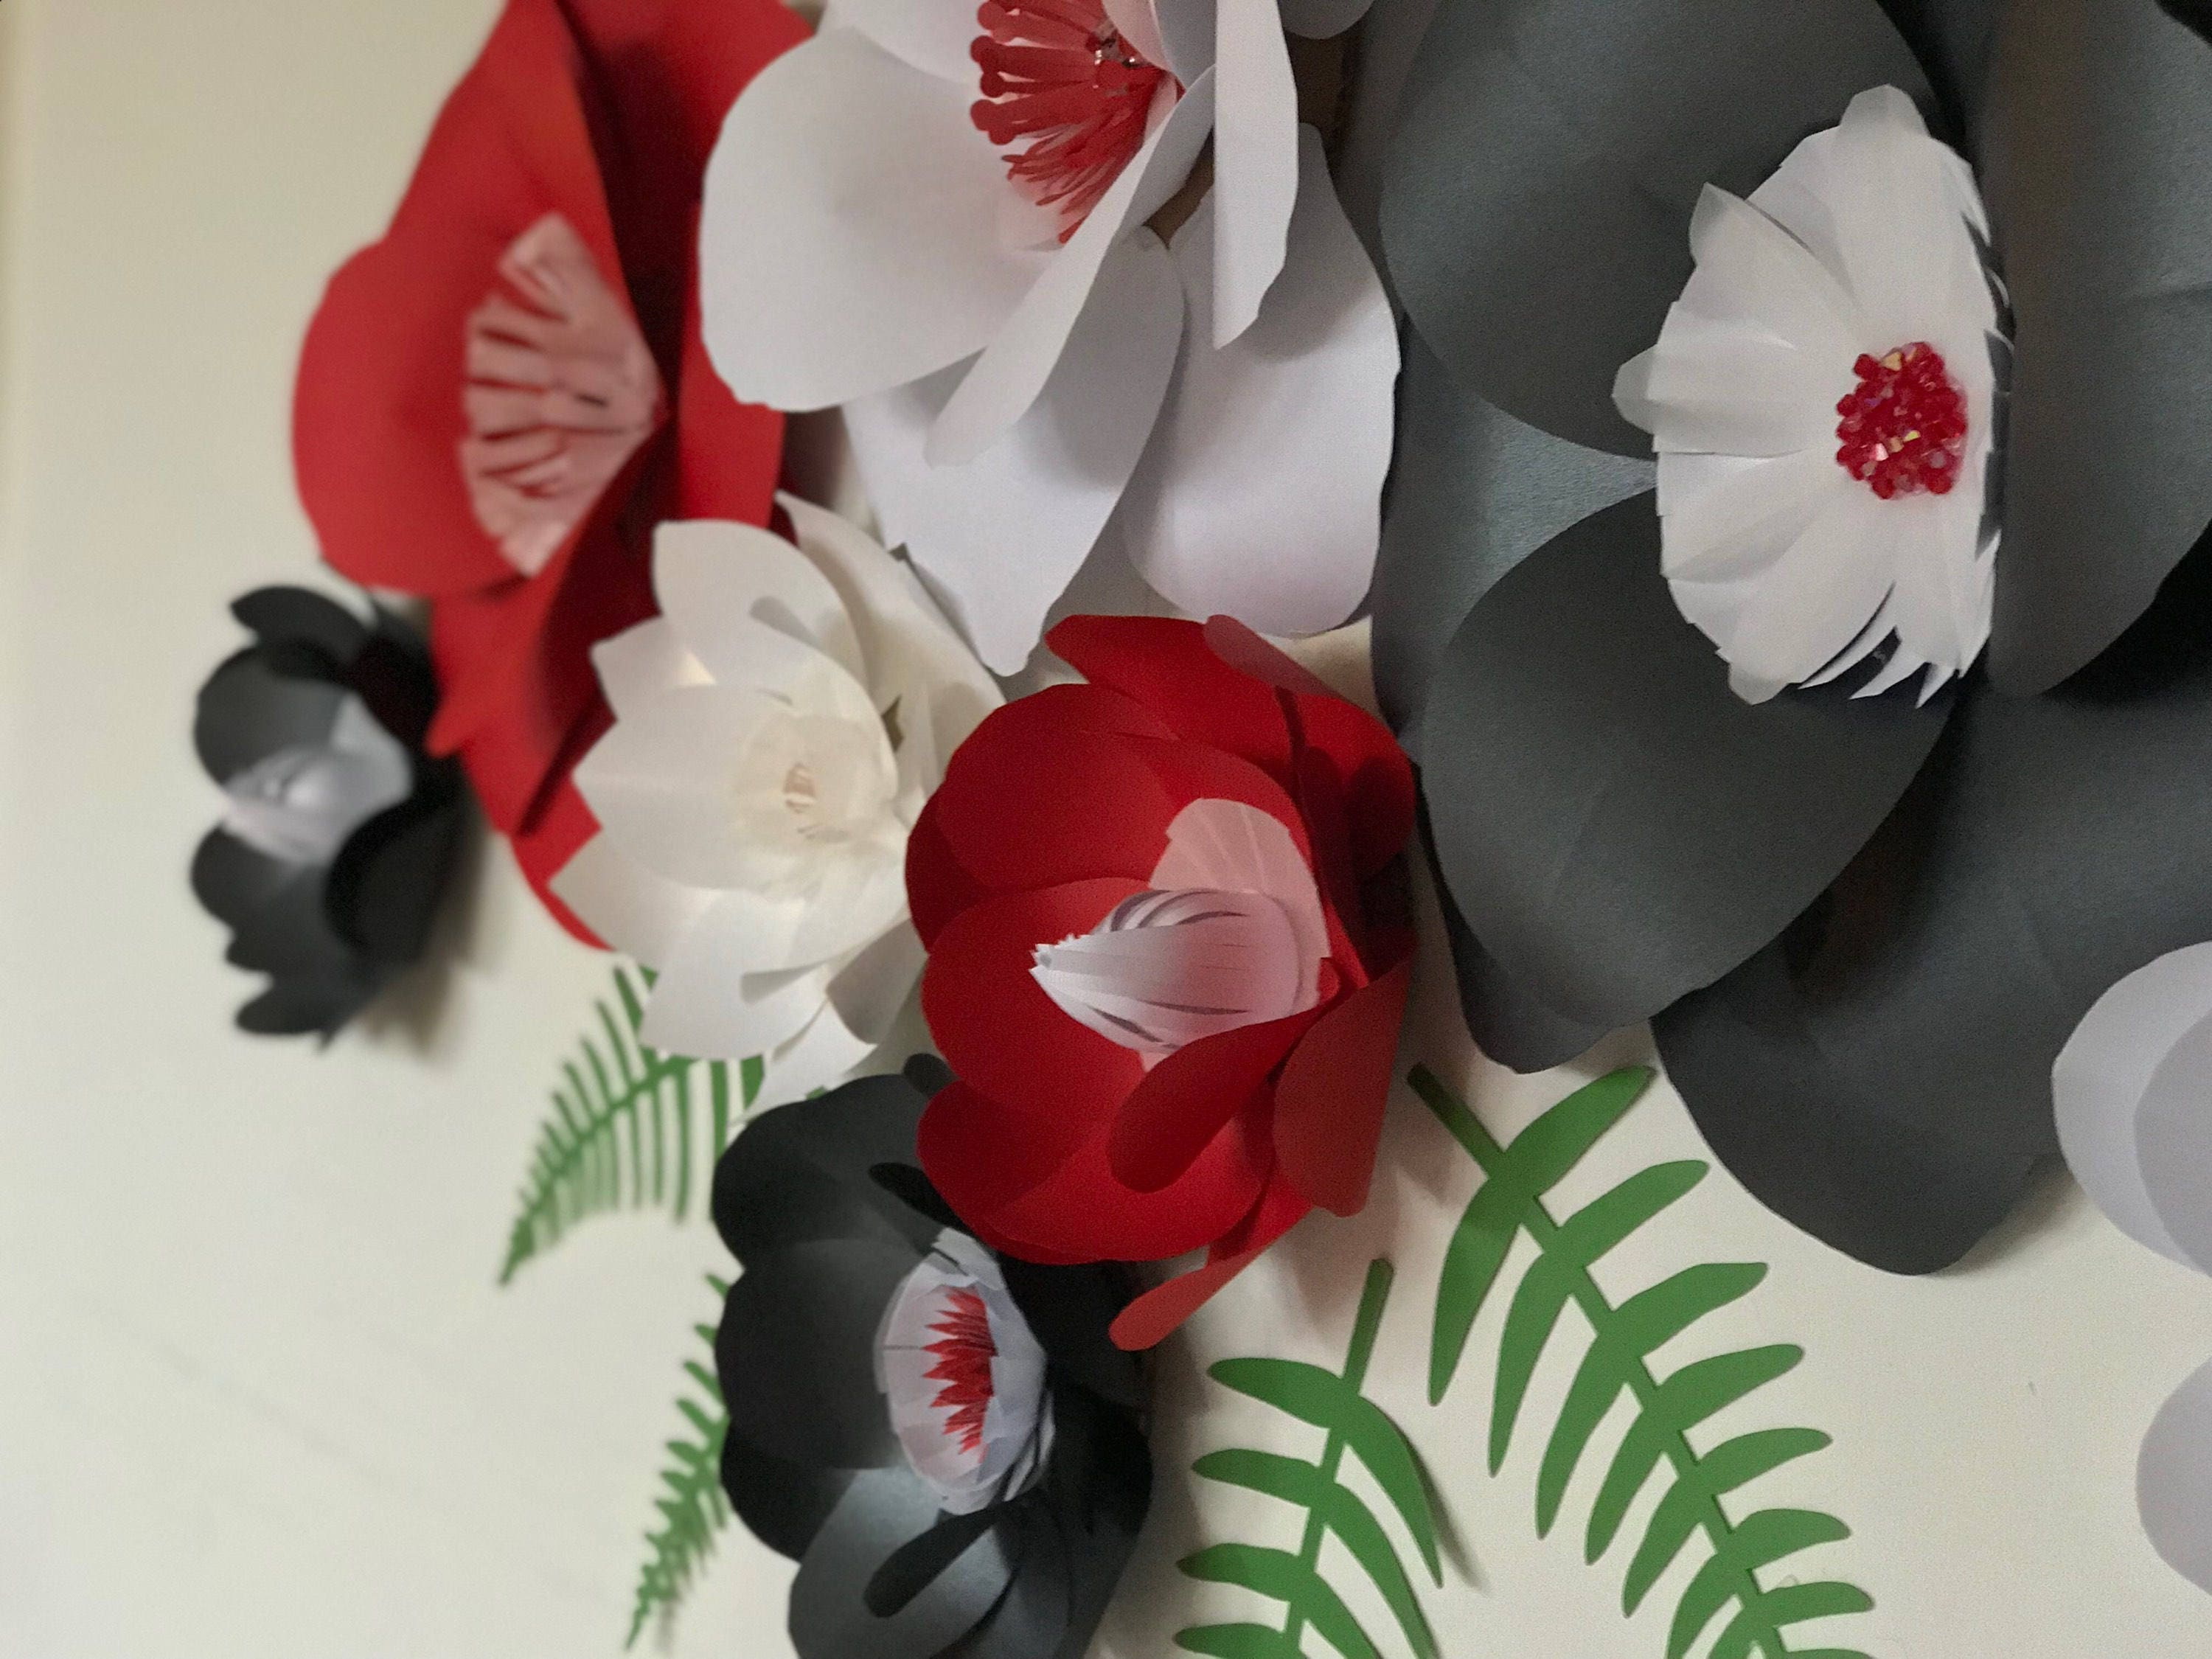 Paper flowers red wall decor black paper flowers red paper flowers paper flowers red wall decor black paper flowers red paper flowers red wall backdrop red wedding backdrop dining room decor red party decor mightylinksfo